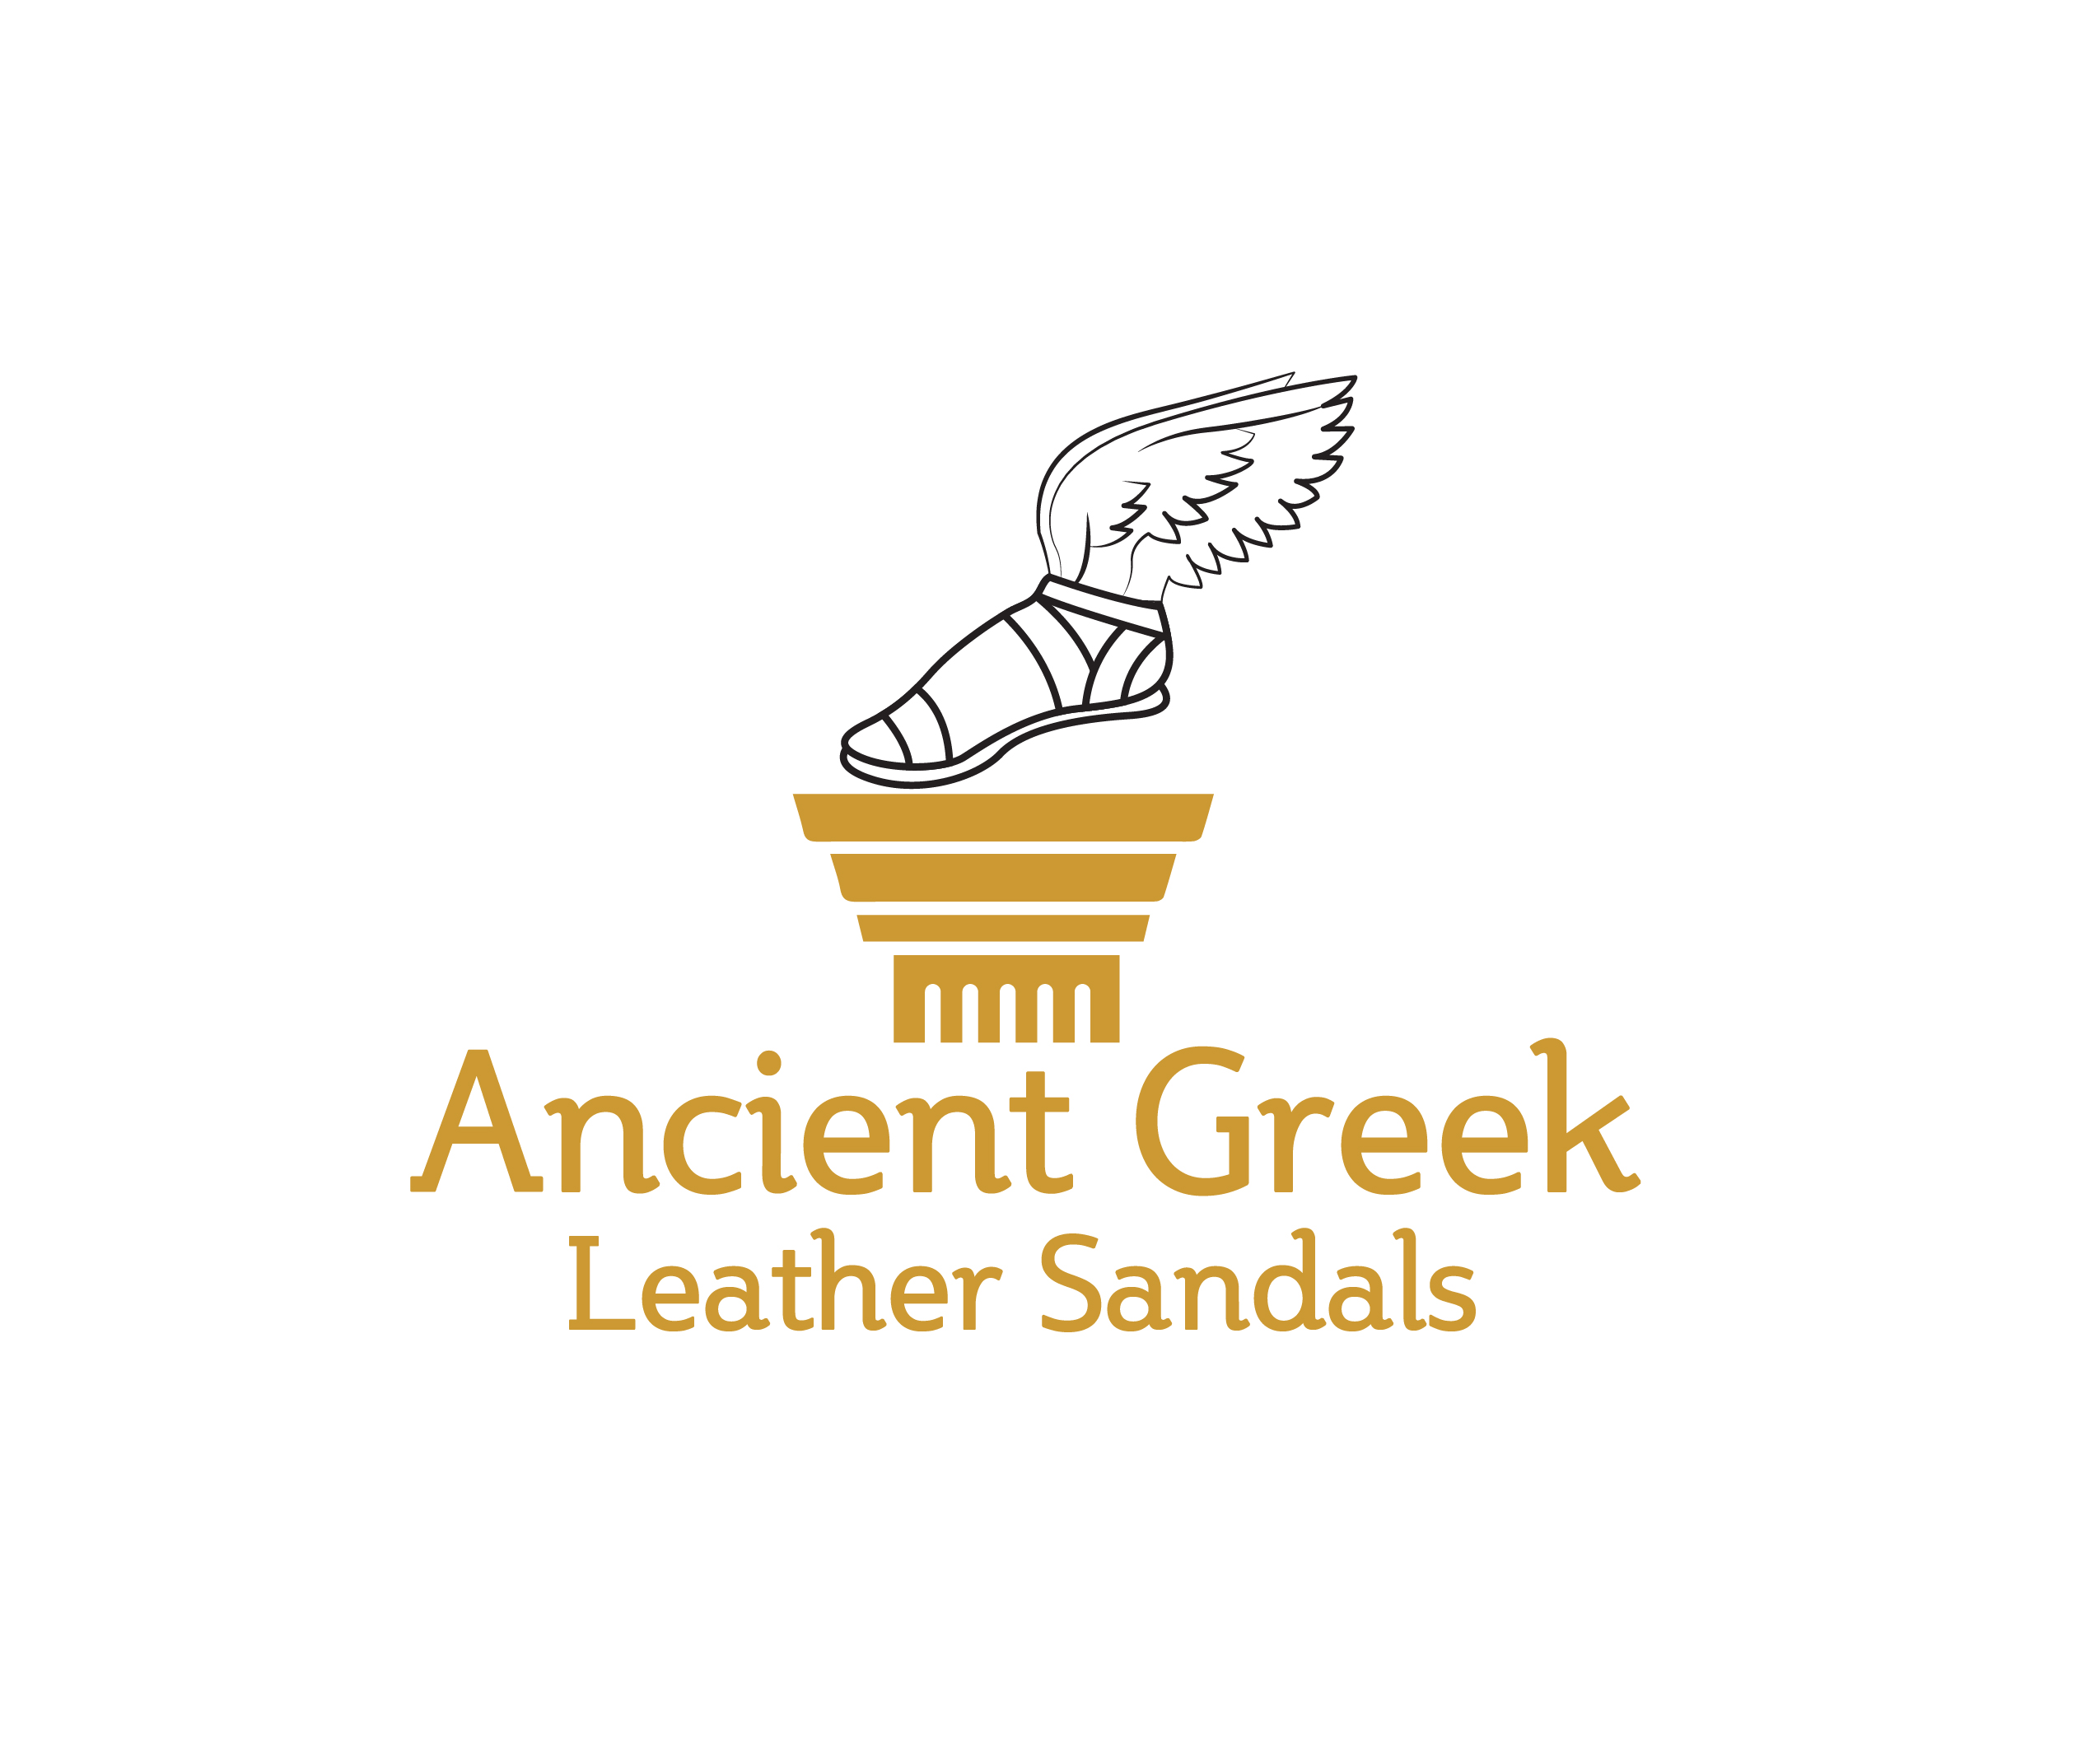 Ancient Greek Leather Sandals